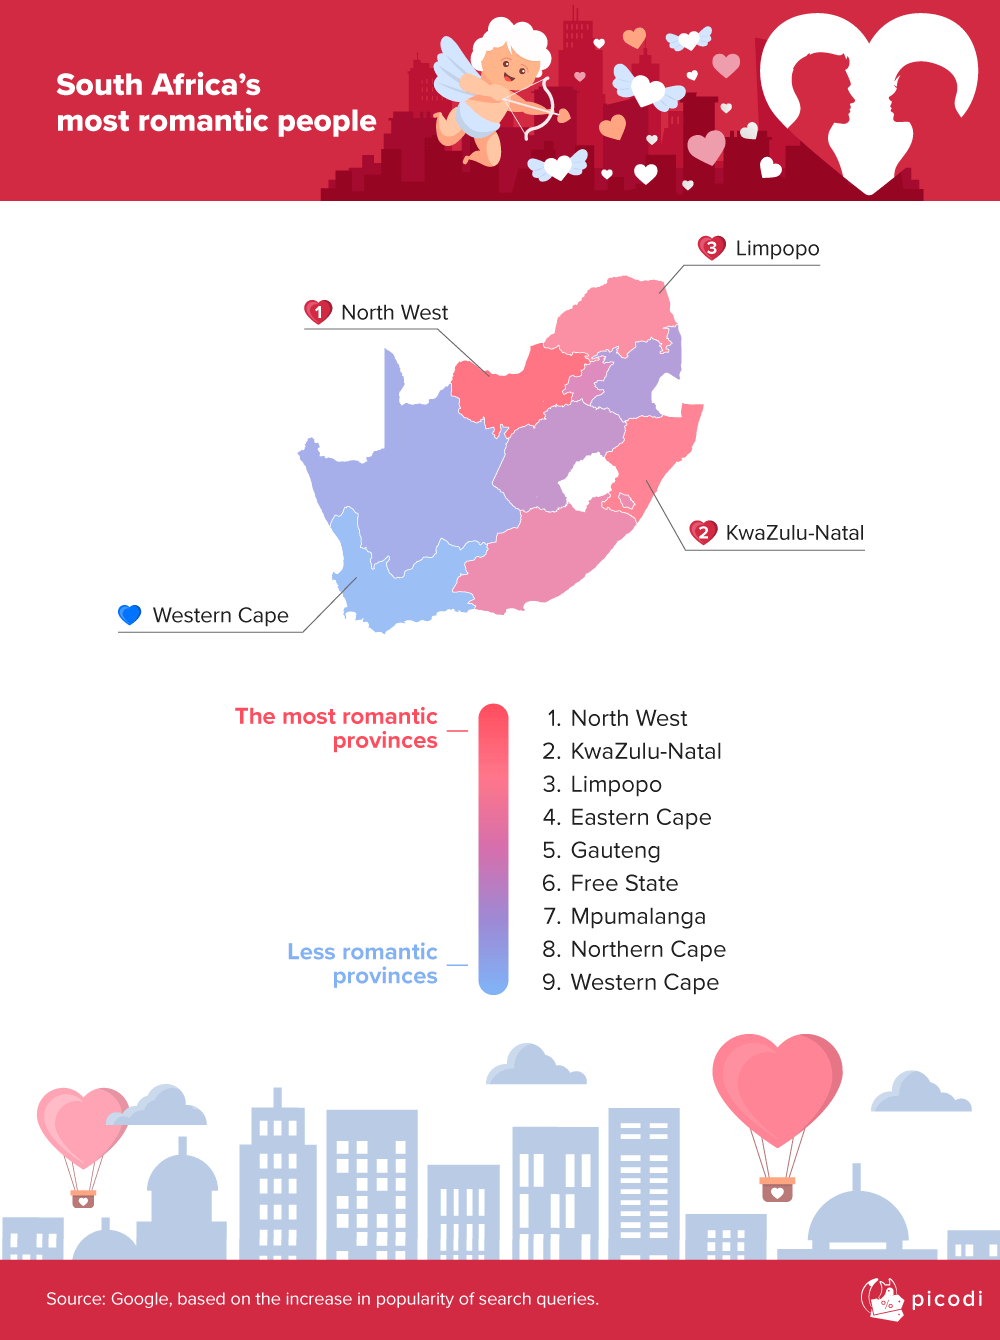 Where do the most romantic people in South Africa live?